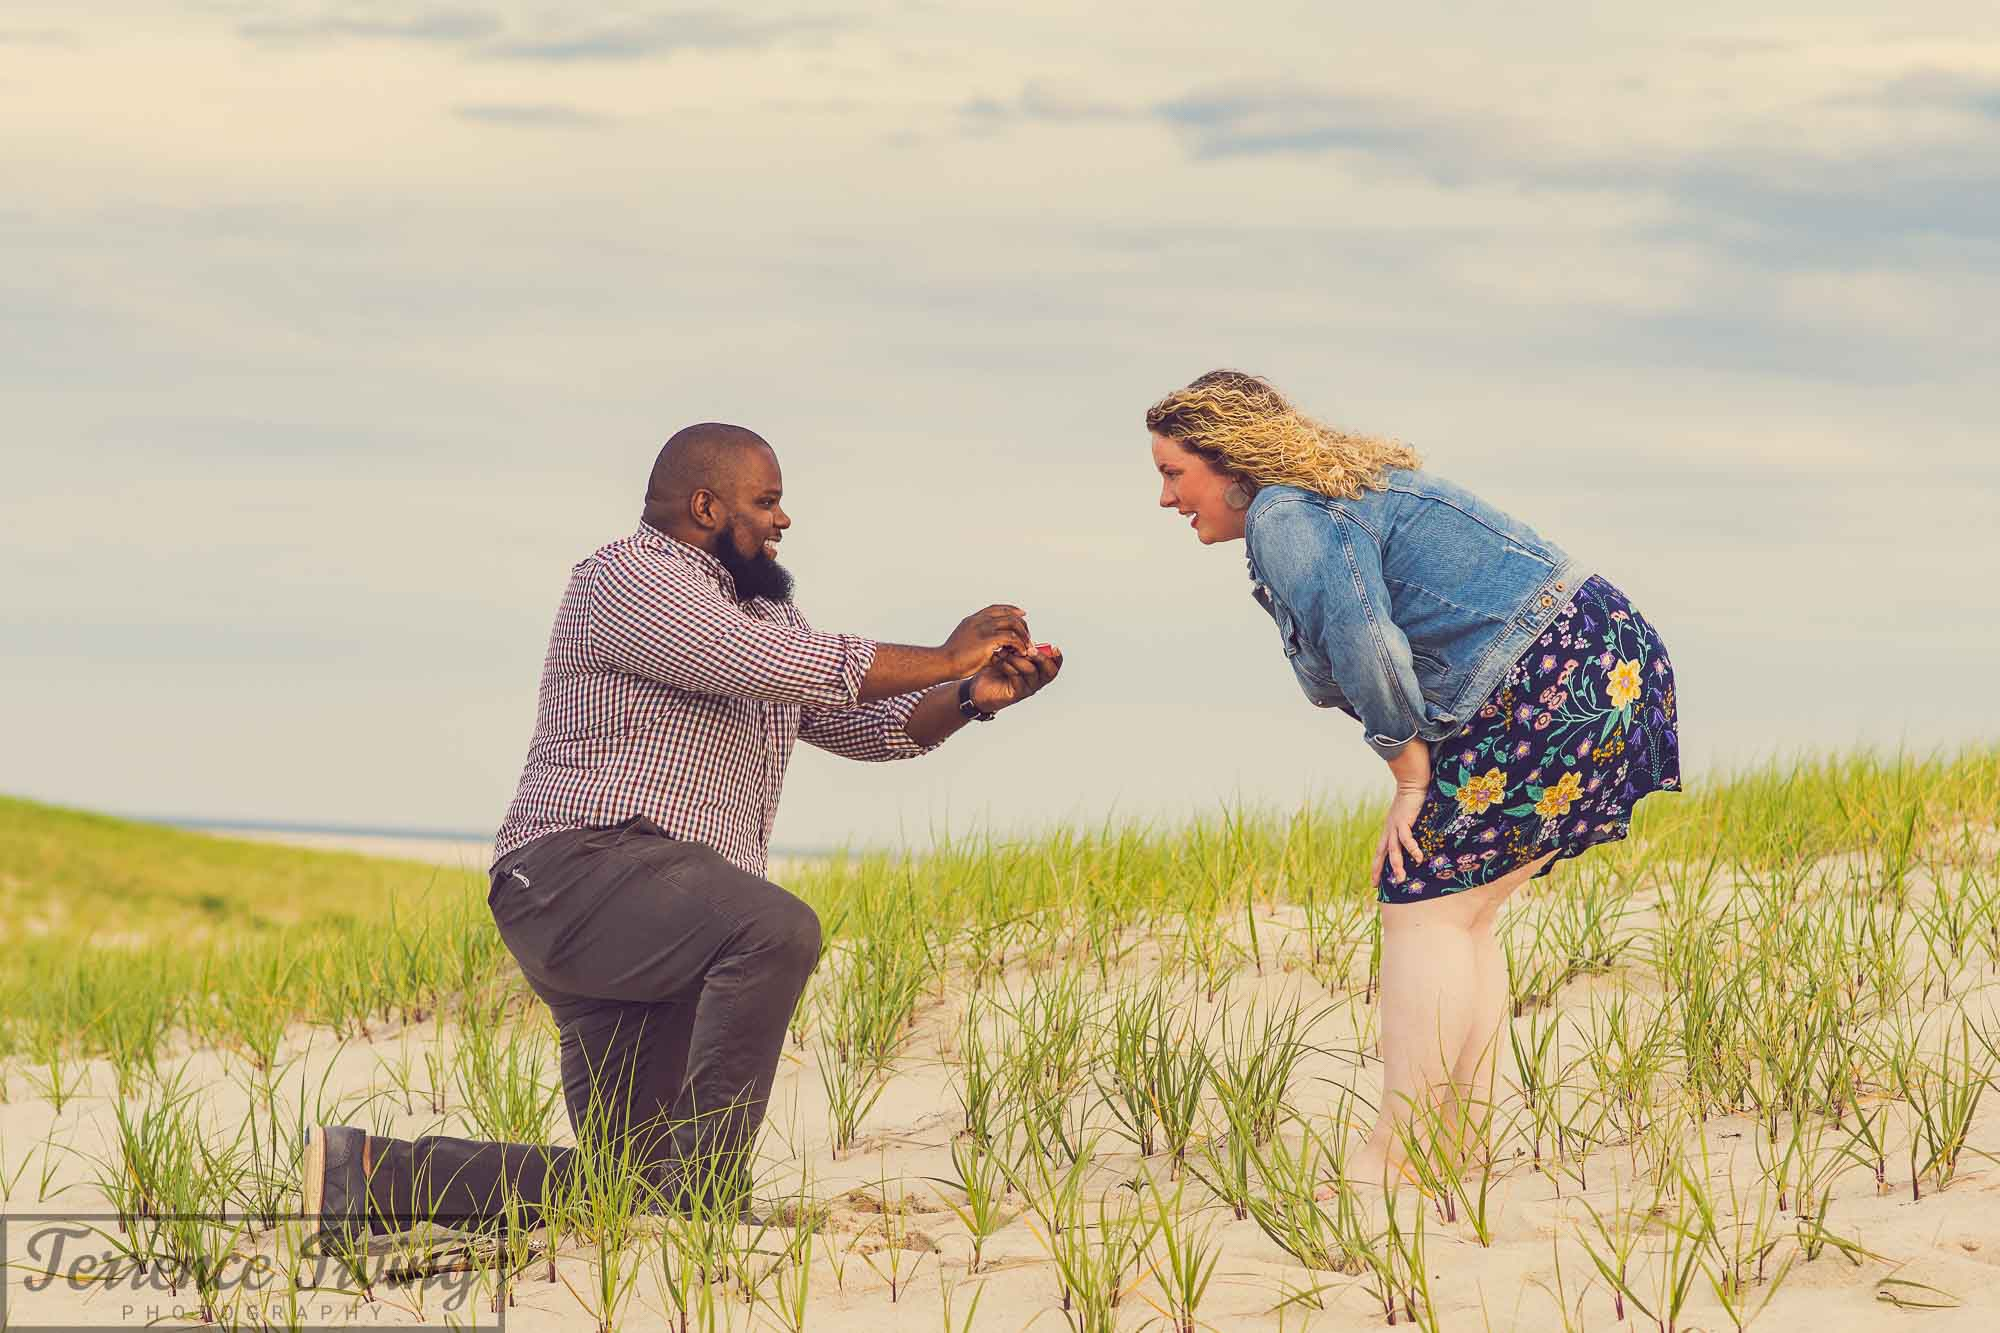 A man proposes marriage to his girlfriend on a grassy Chatham Beach as she looks down in disbelief.